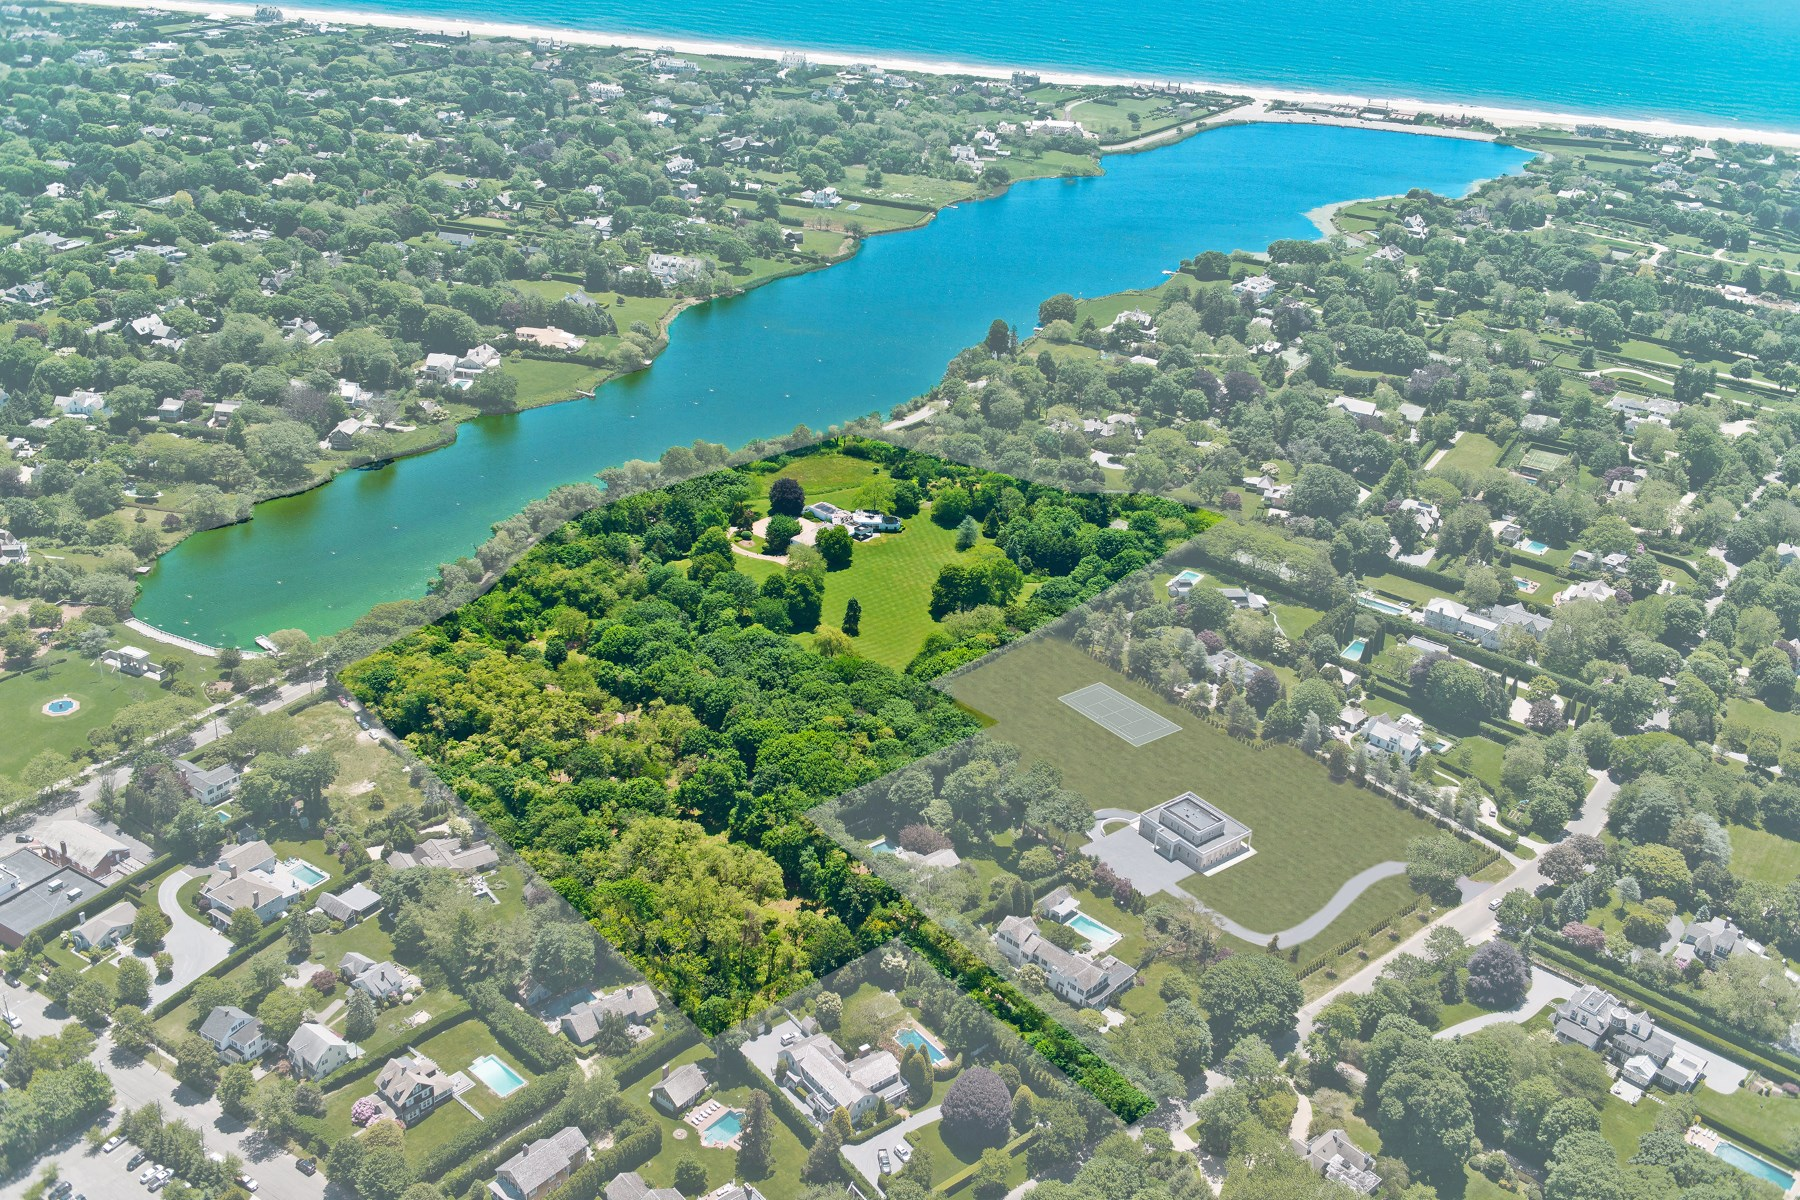 Moradia para Venda às Spectacular Waterviews on Lake Agawam 137,153 Pond Lane, Lot 4 & 5, Southampton Estate Section, Southampton, Nova York, 11968 Estados Unidos